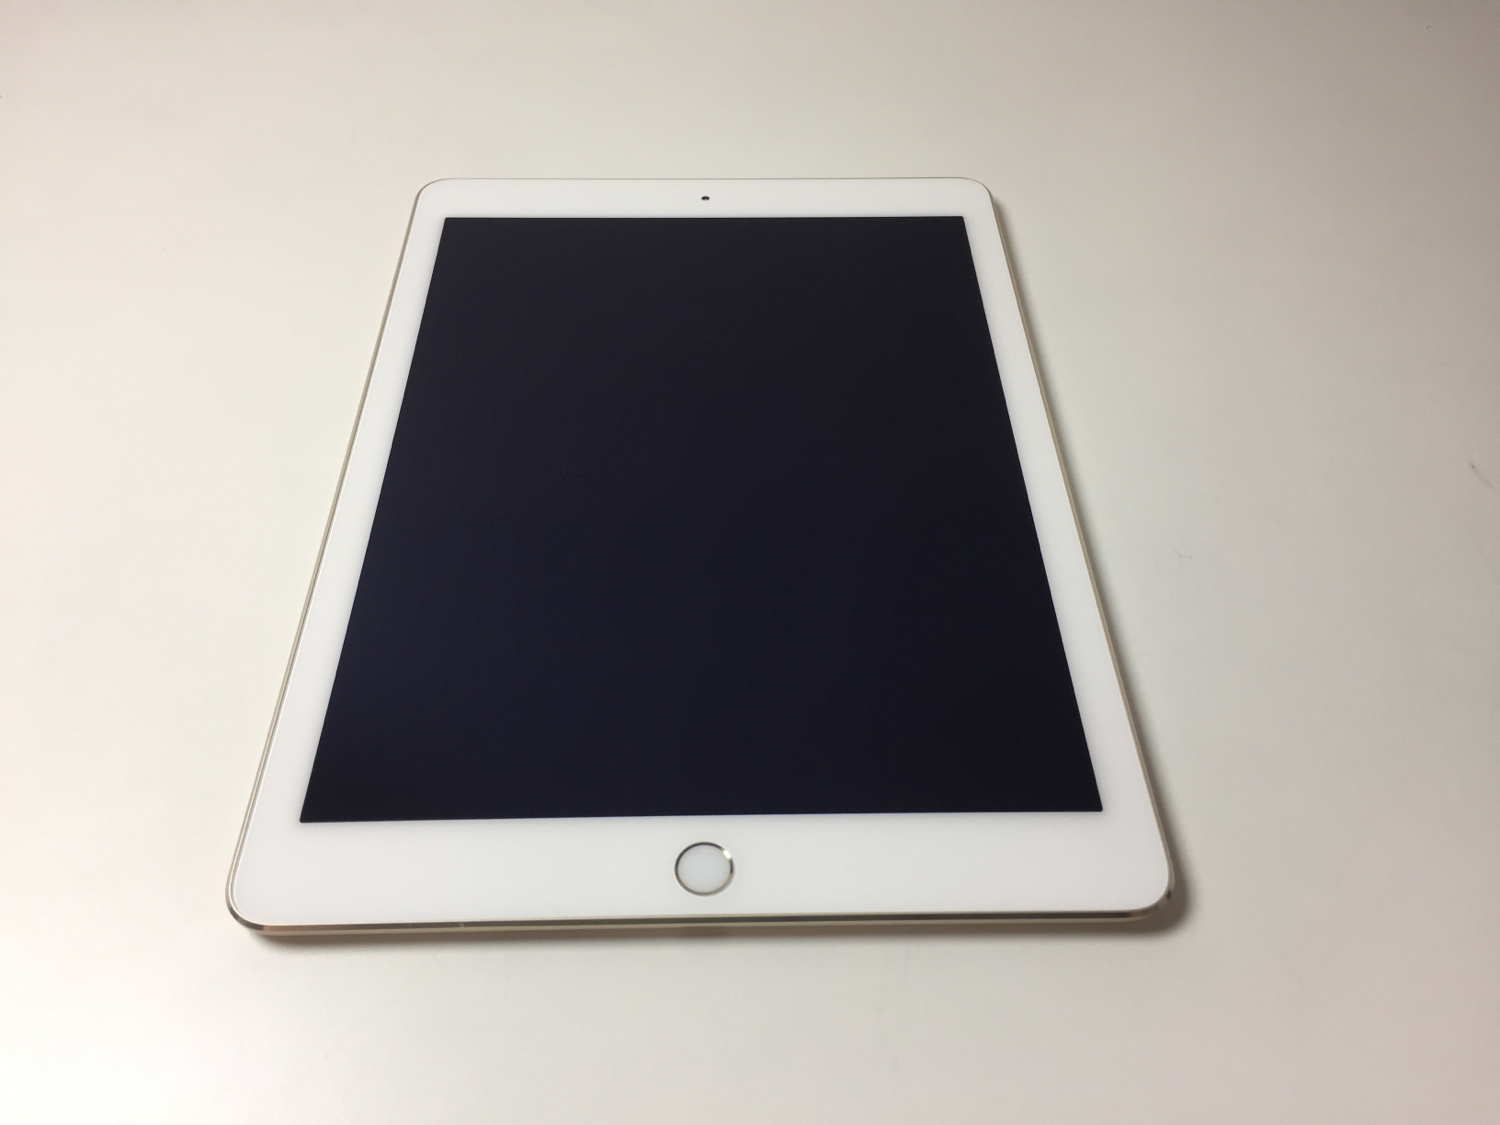 iPad Air 2 Wi-Fi 64GB, 64GB, GOLD, Afbeelding 1